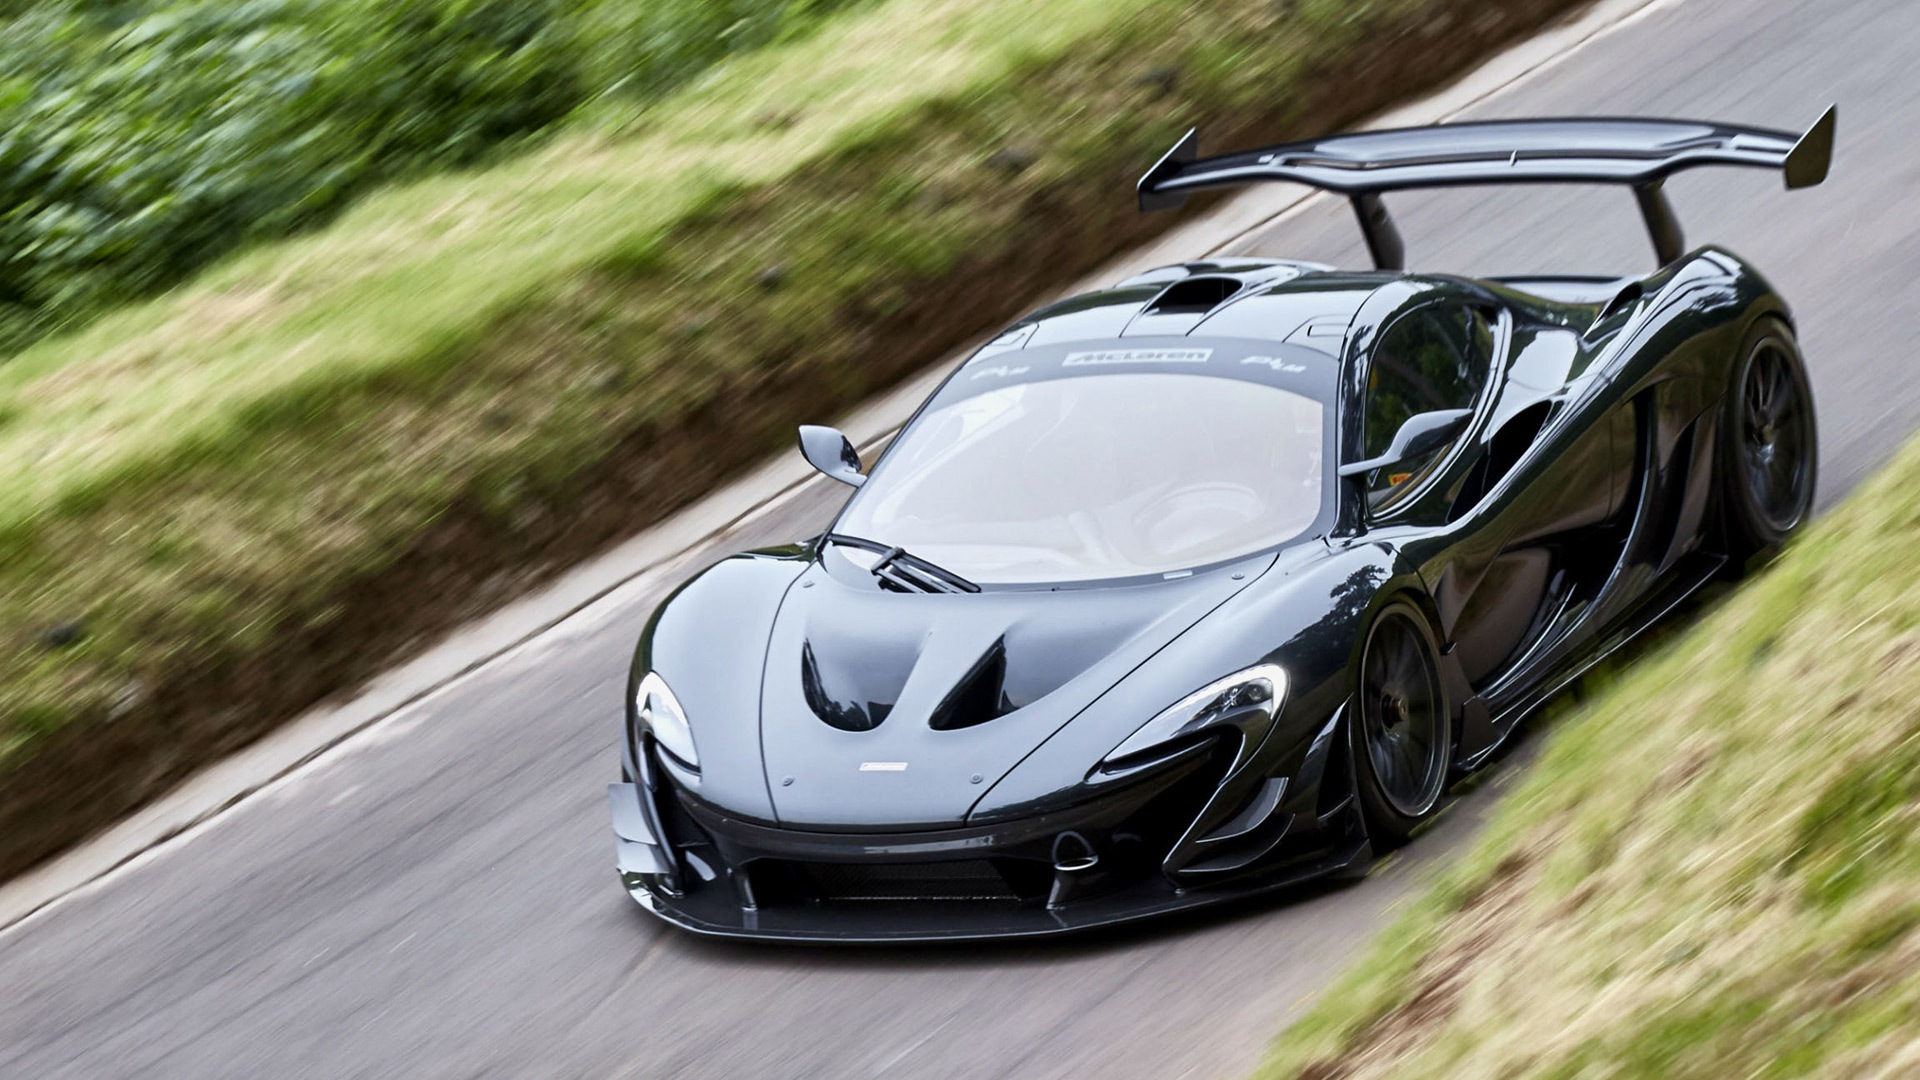 McLaren P1 LM is one of the most expensive cars from the P1 car series